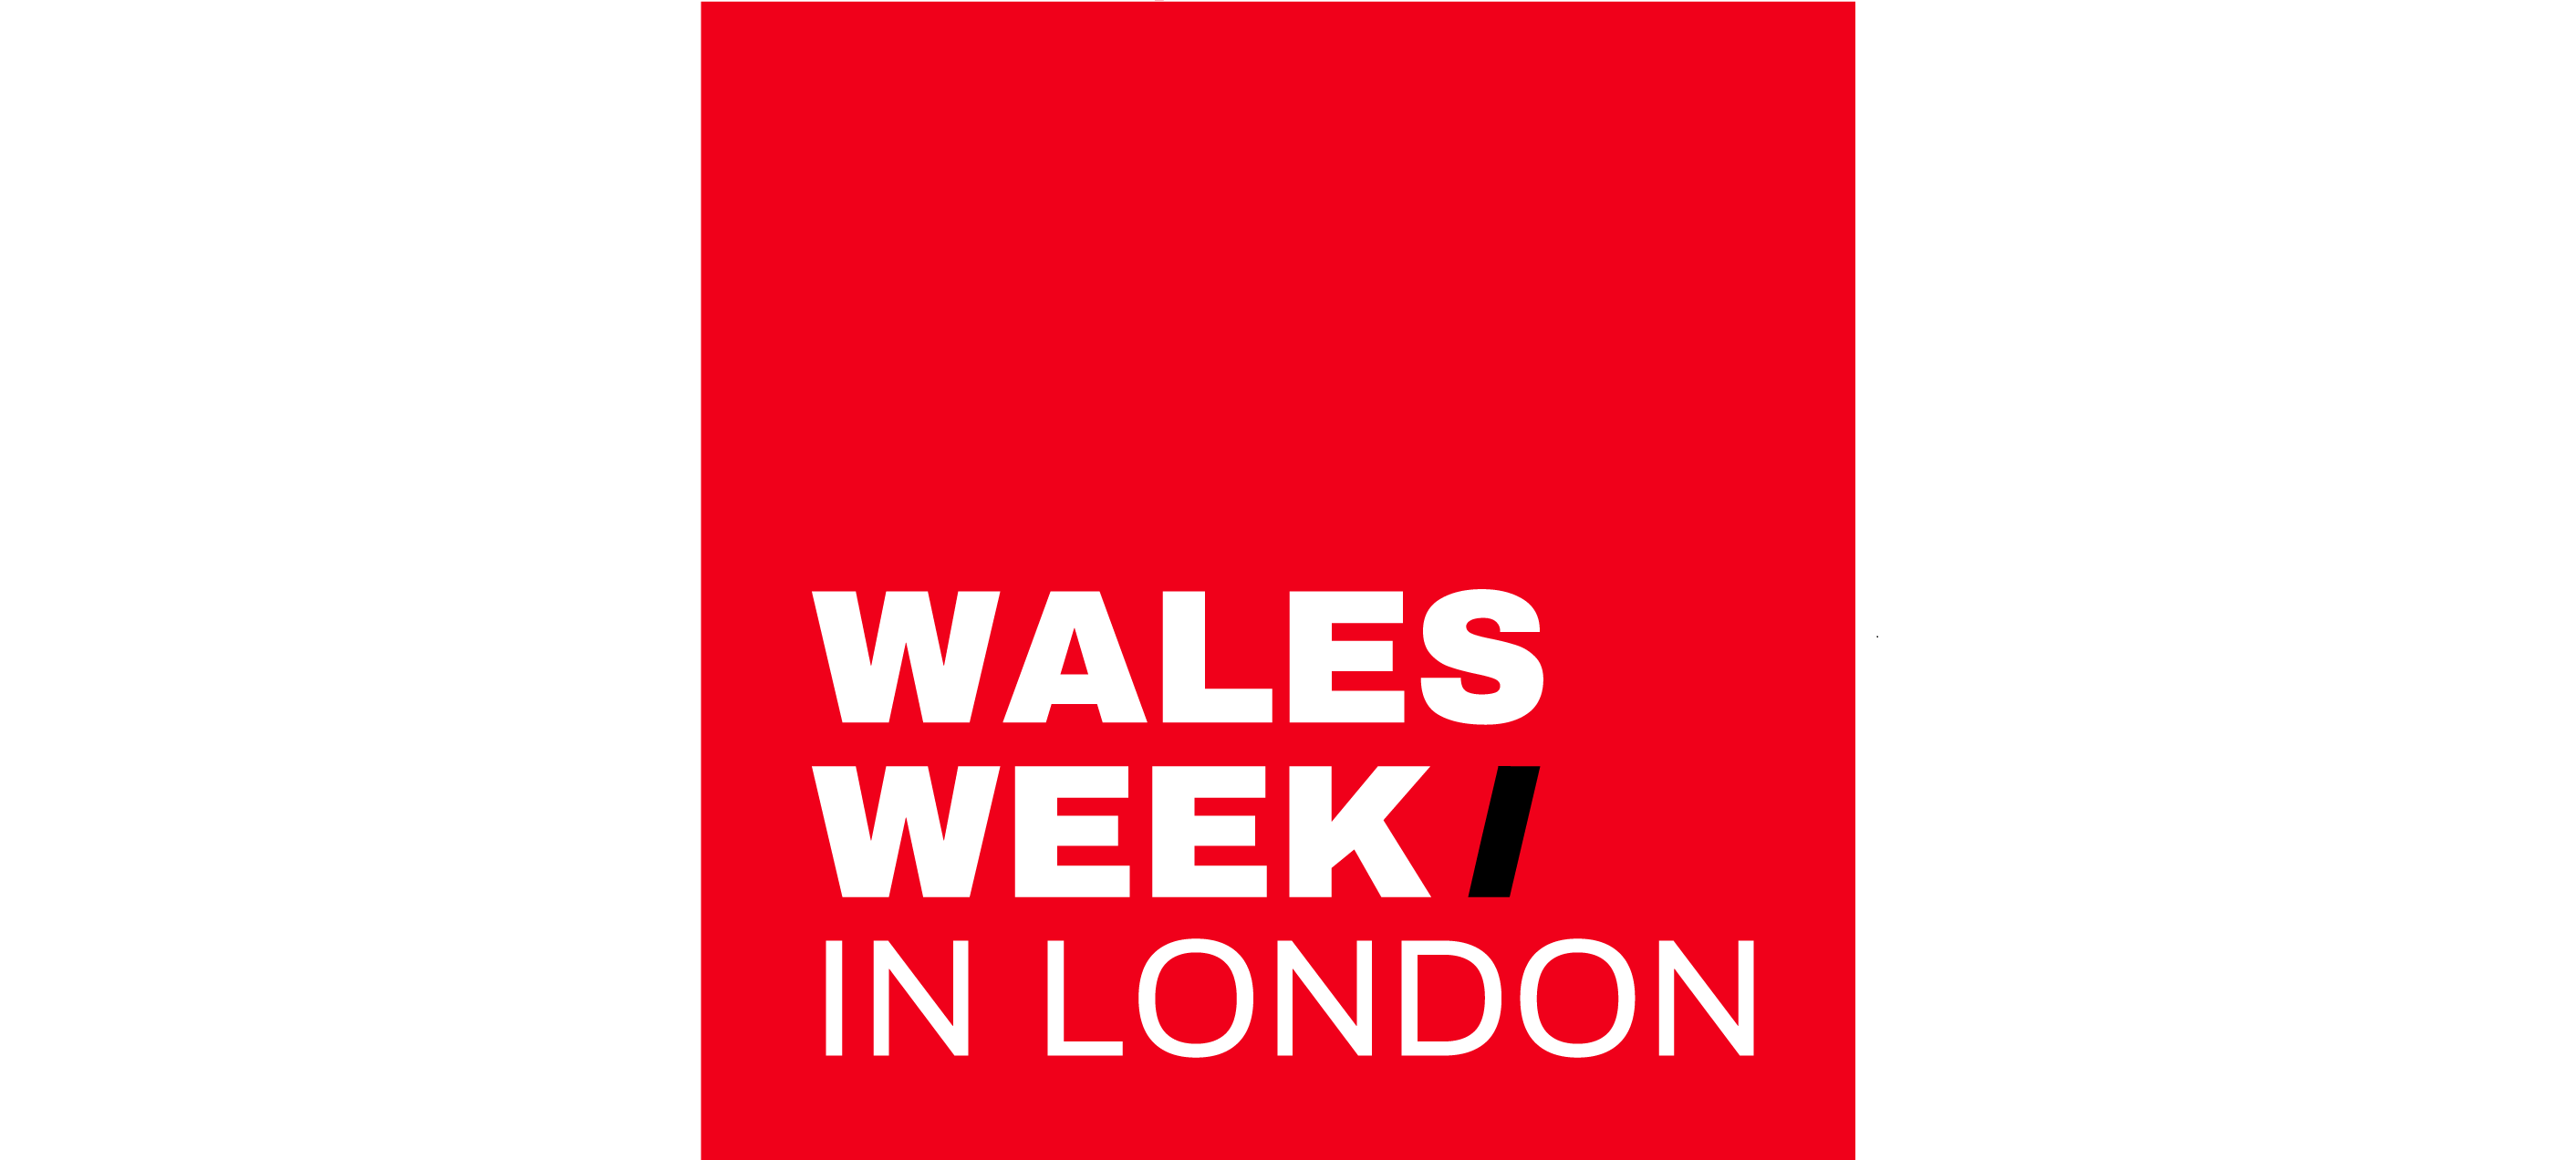 Wales Week in London